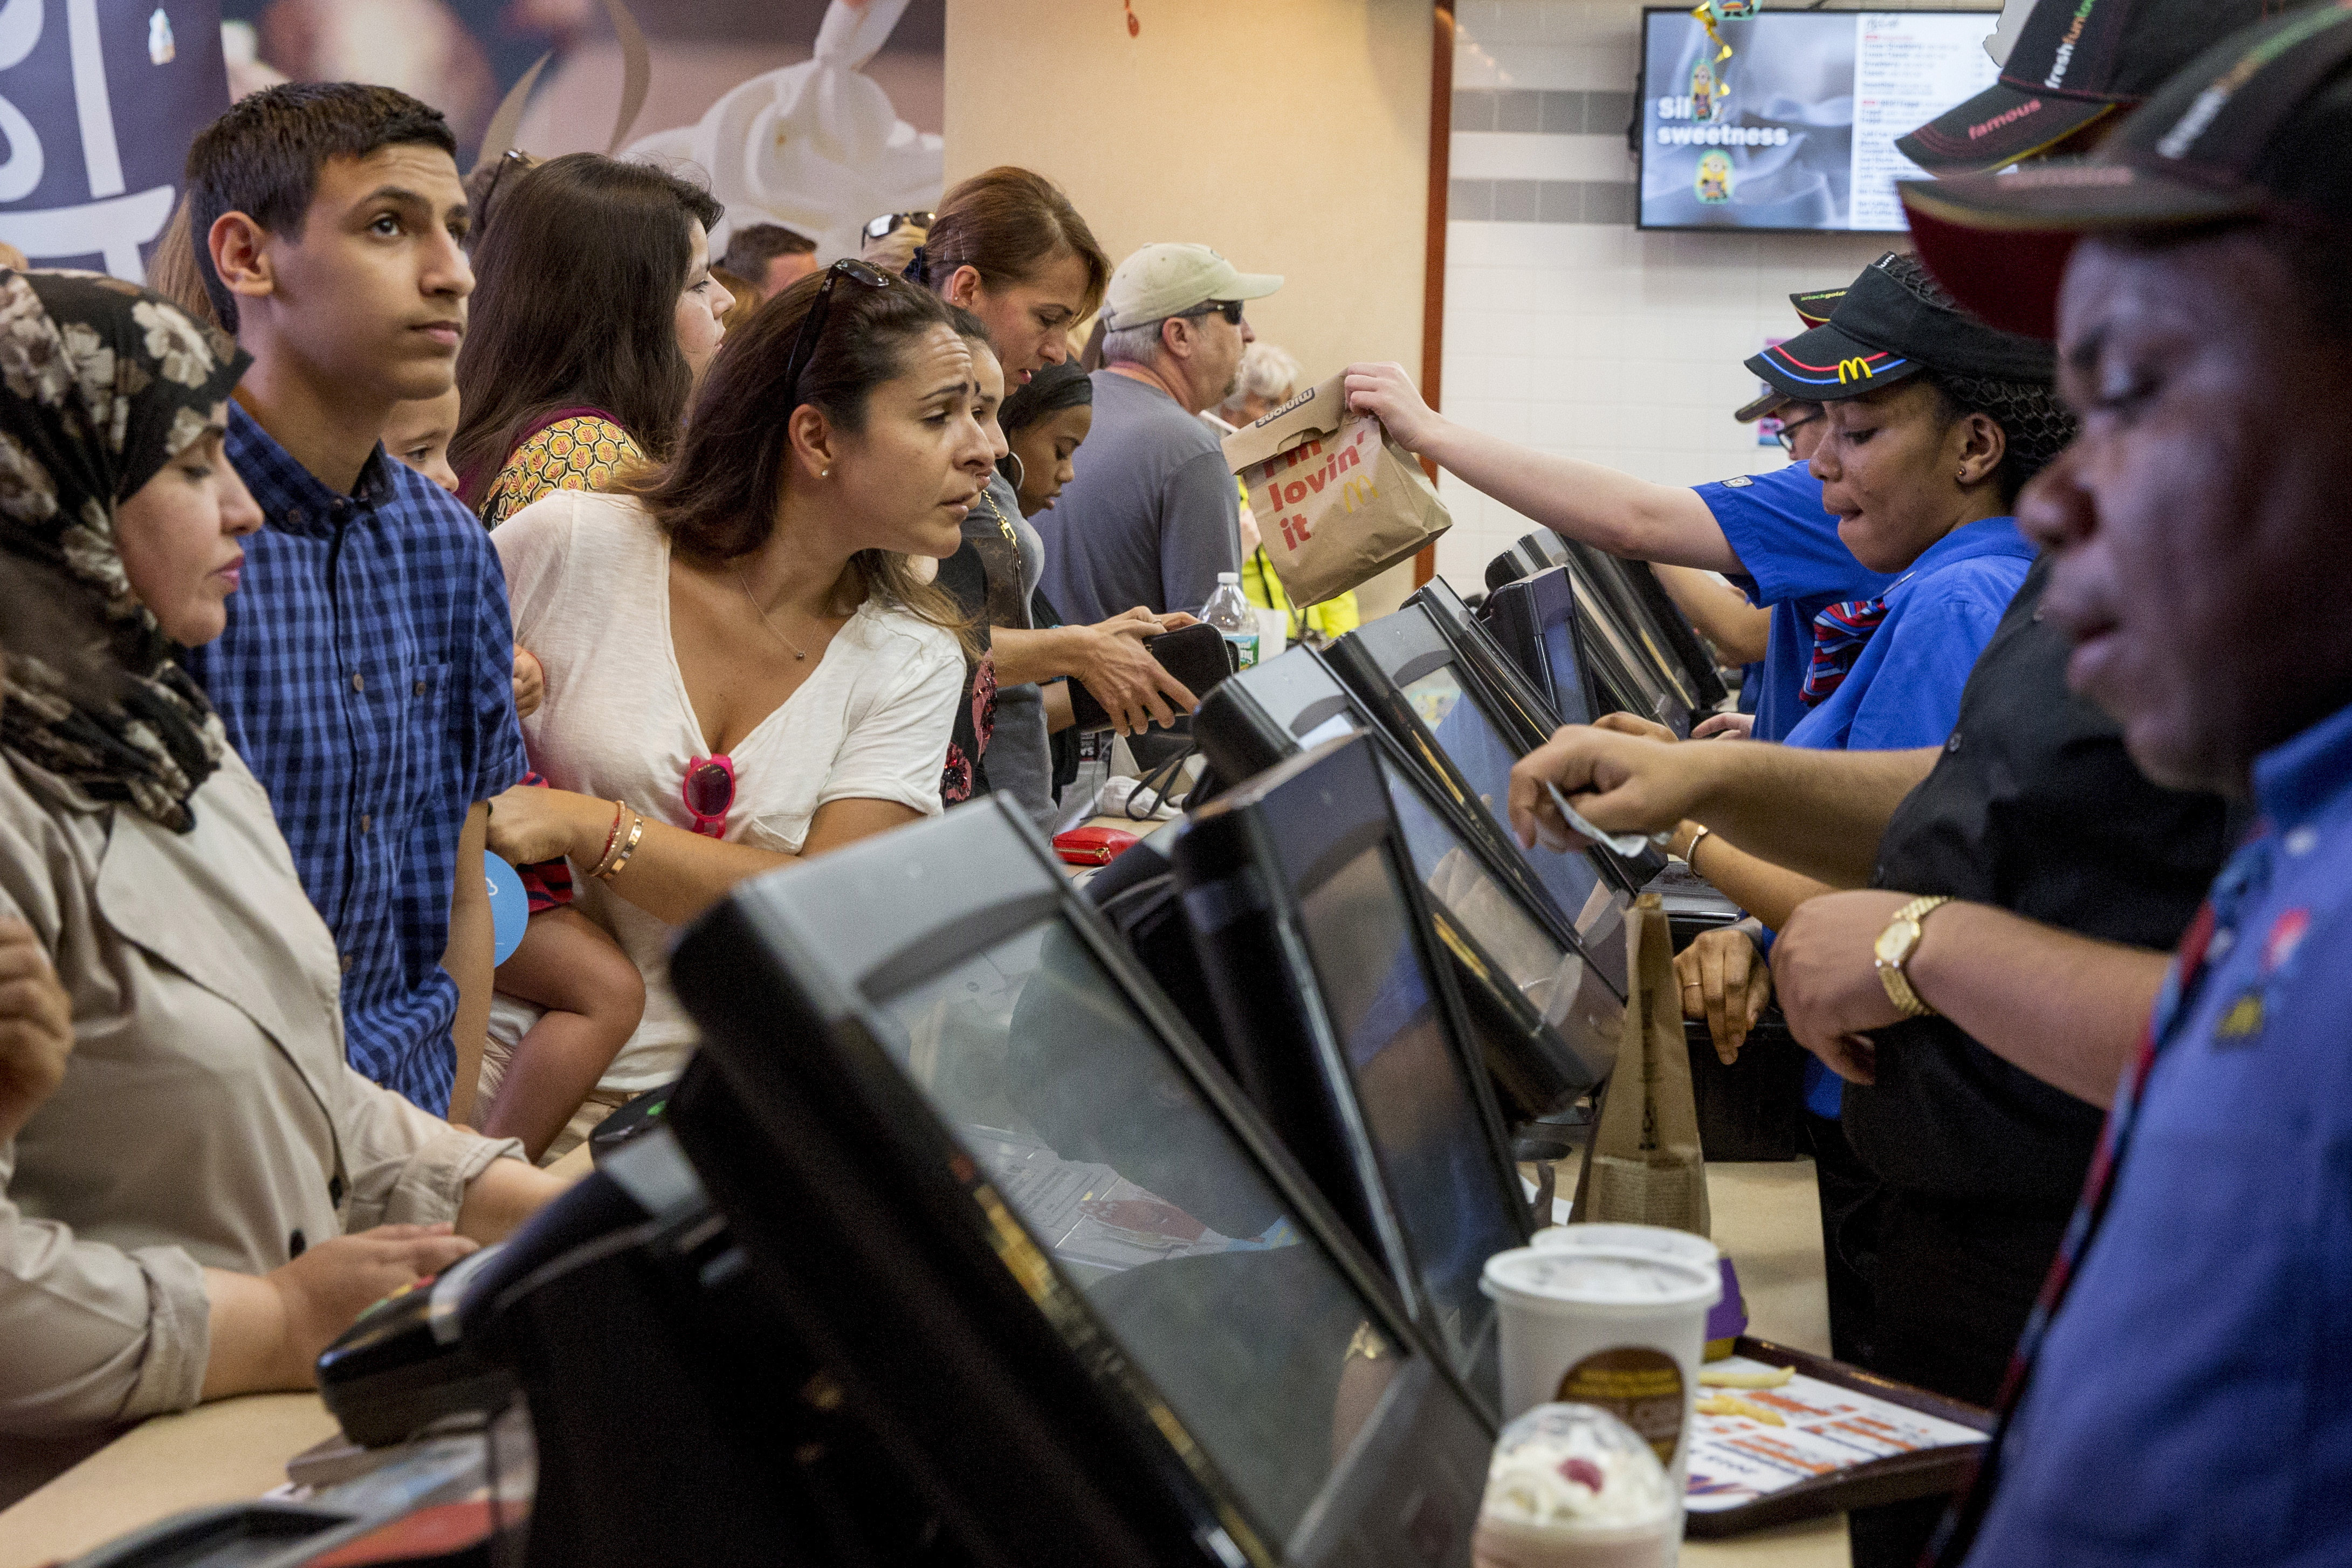 Customers are served at a McDonald's in Times Square in New York on July 23, 2015.